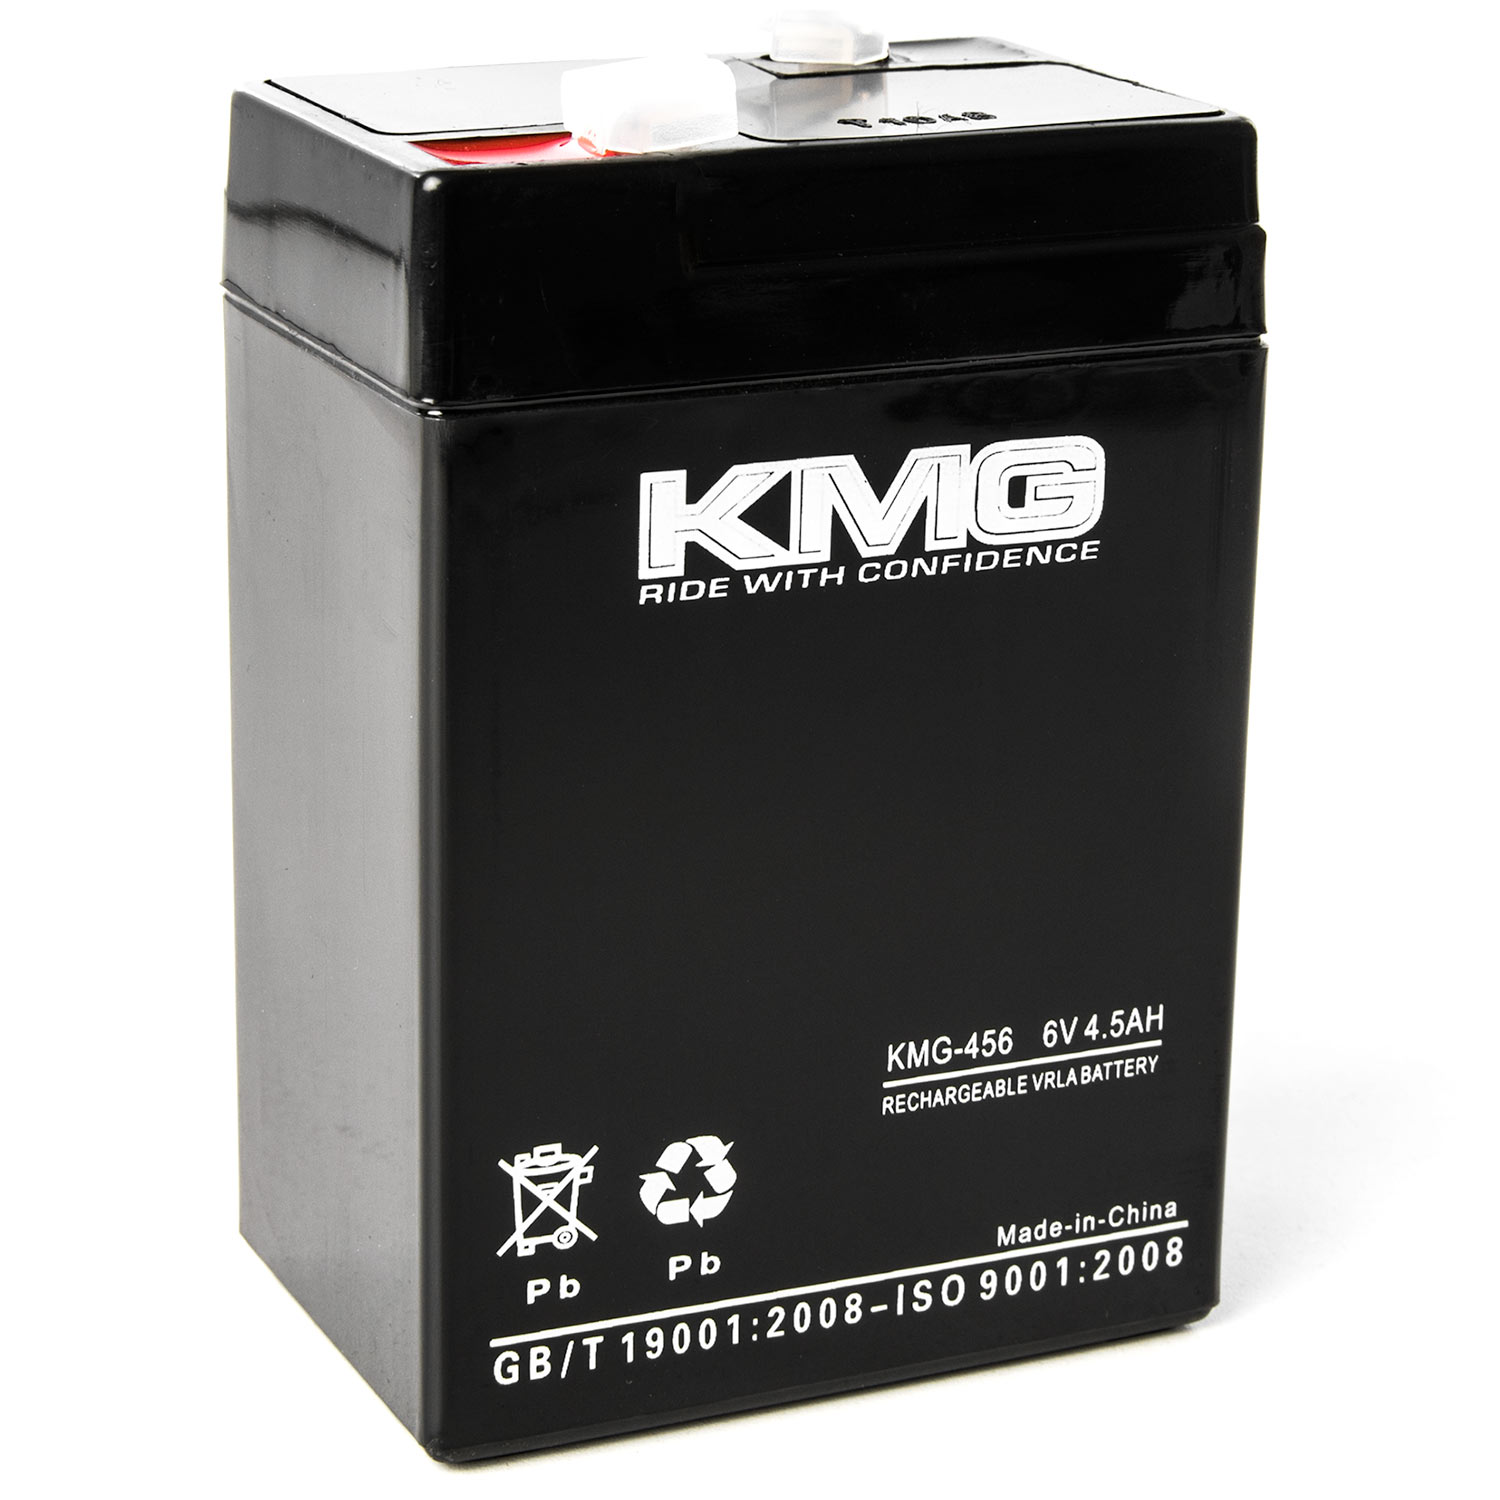 KMG 6 Volts 4.5Ah Replacement Battery for Eagle Pitcher CFM6V4.6 - image 3 of 3